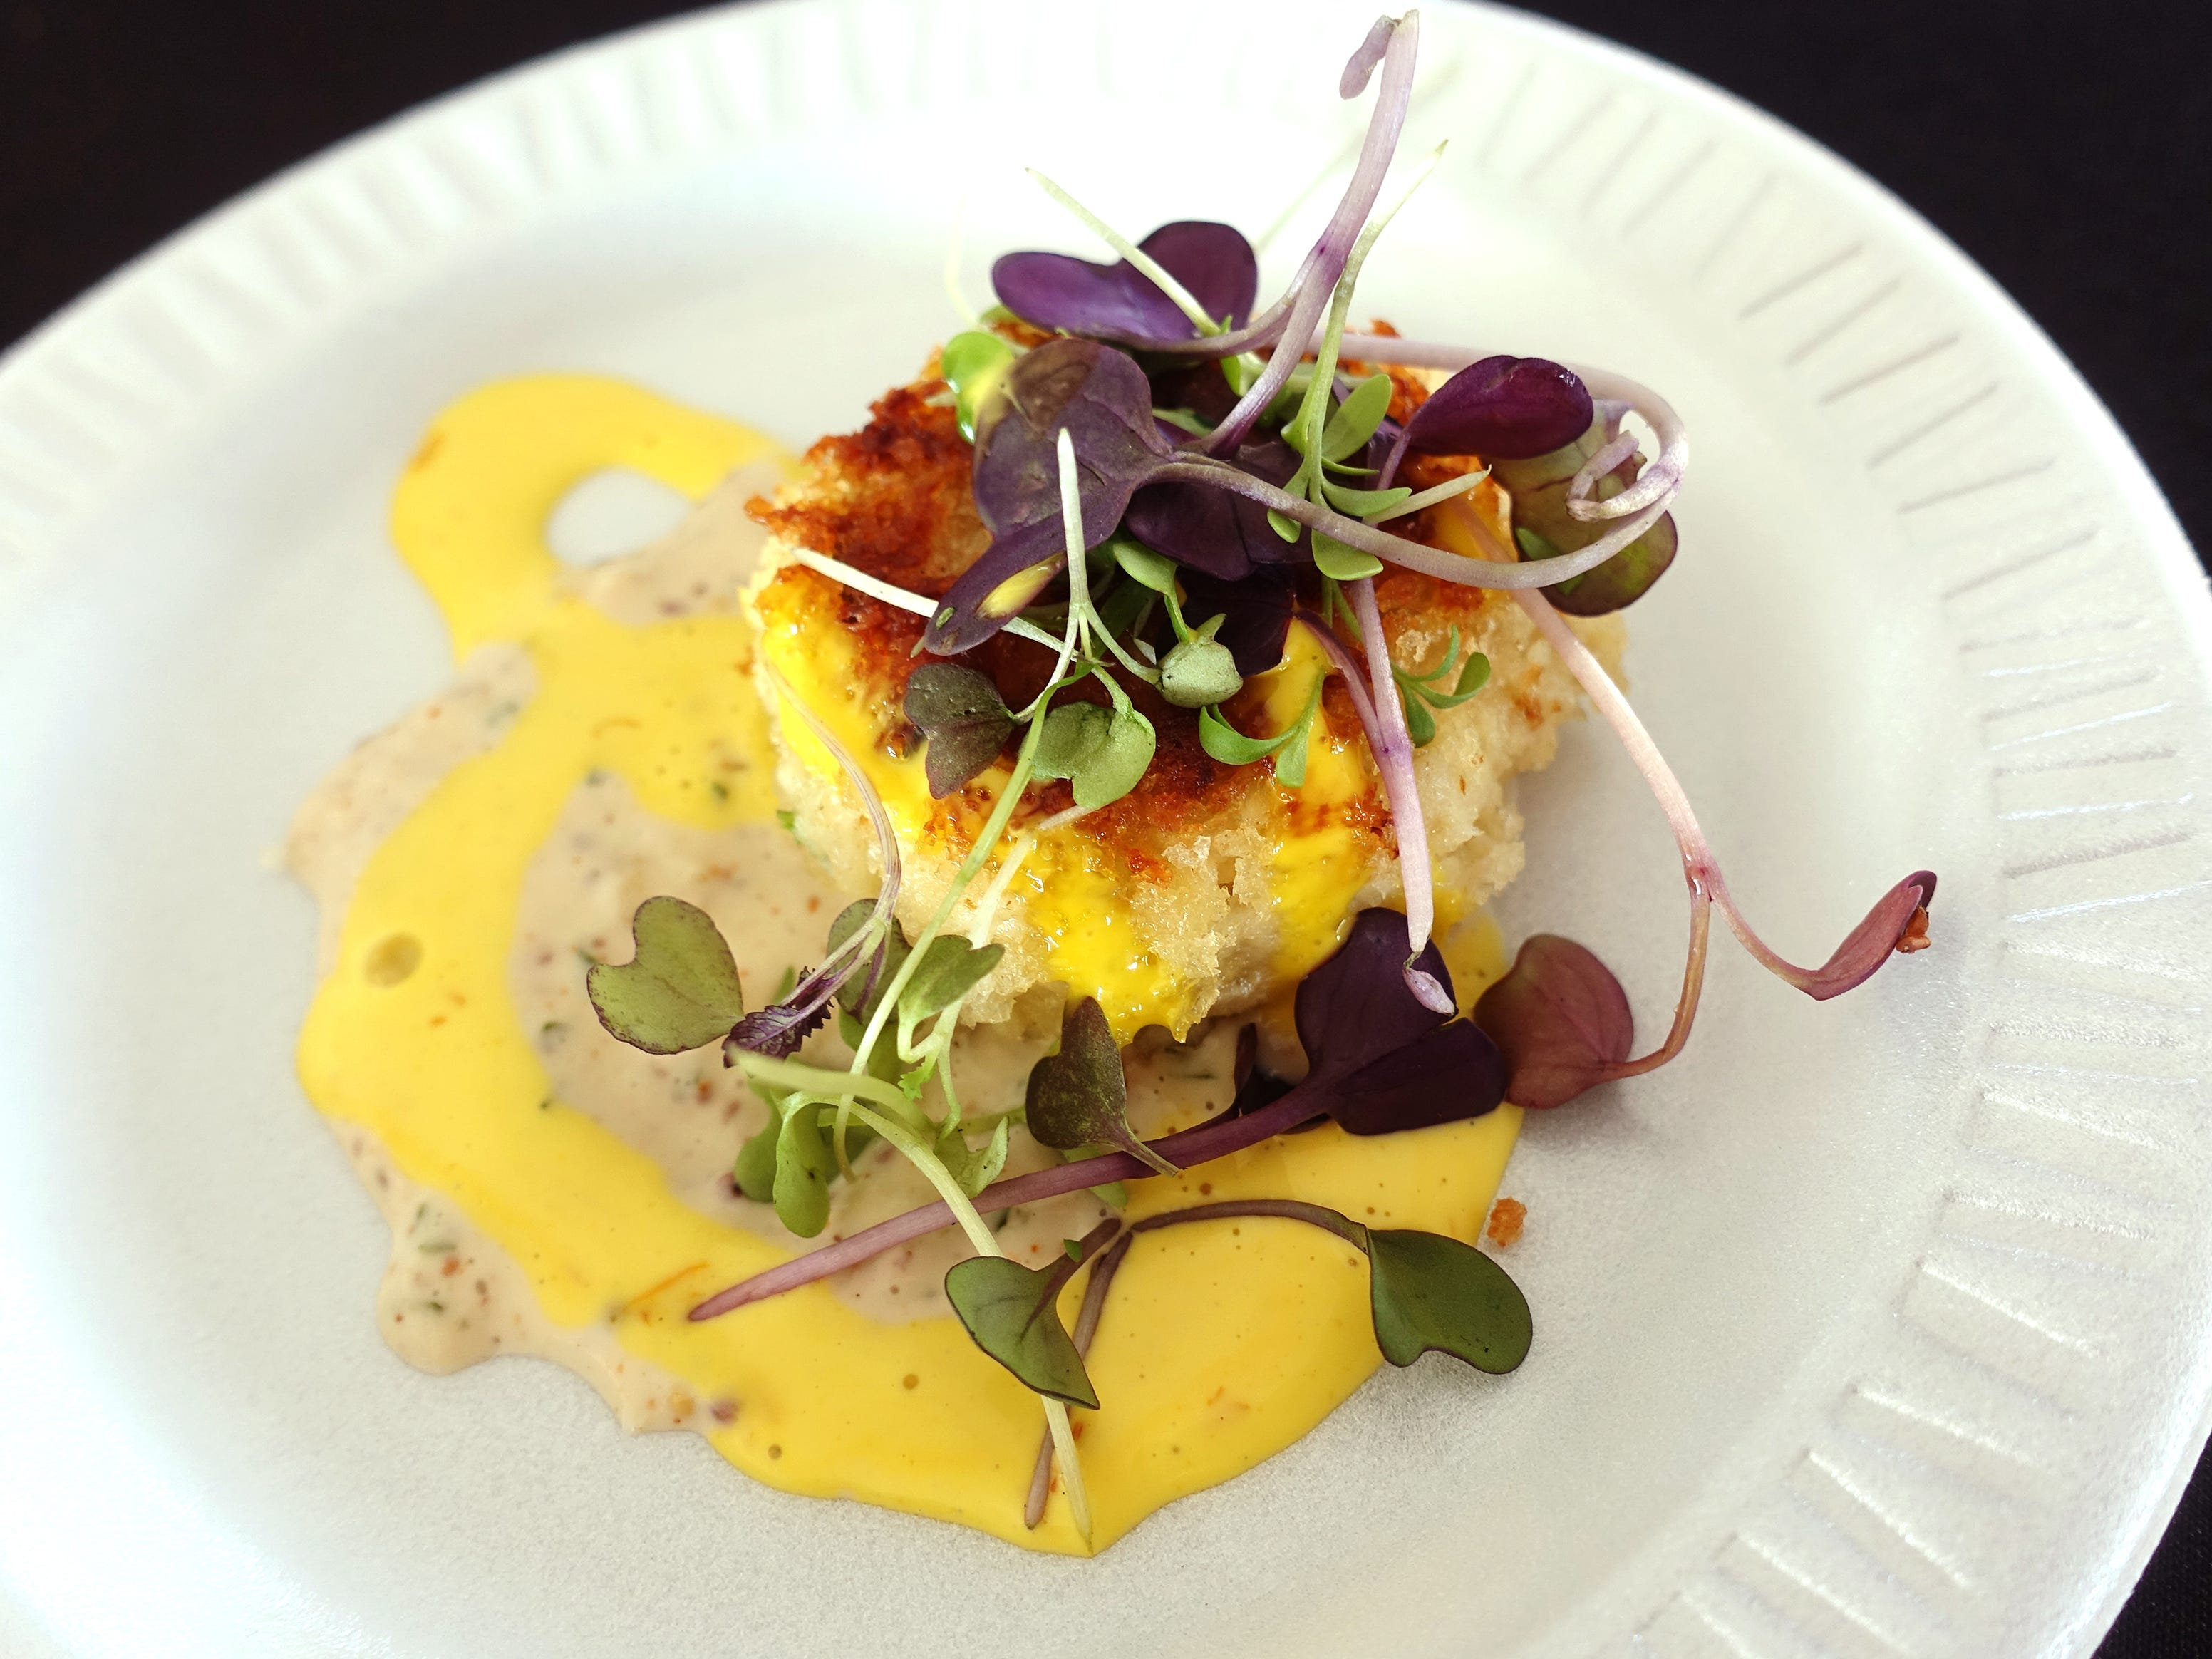 Maryland-style crab cake with roasted onion remoulade and saffron aioli from Timo Wine Bar at azcentral Wine & Food Experience 2018 at WestWorld of Scottsdale, Saturday, Nov. 3, 2018.